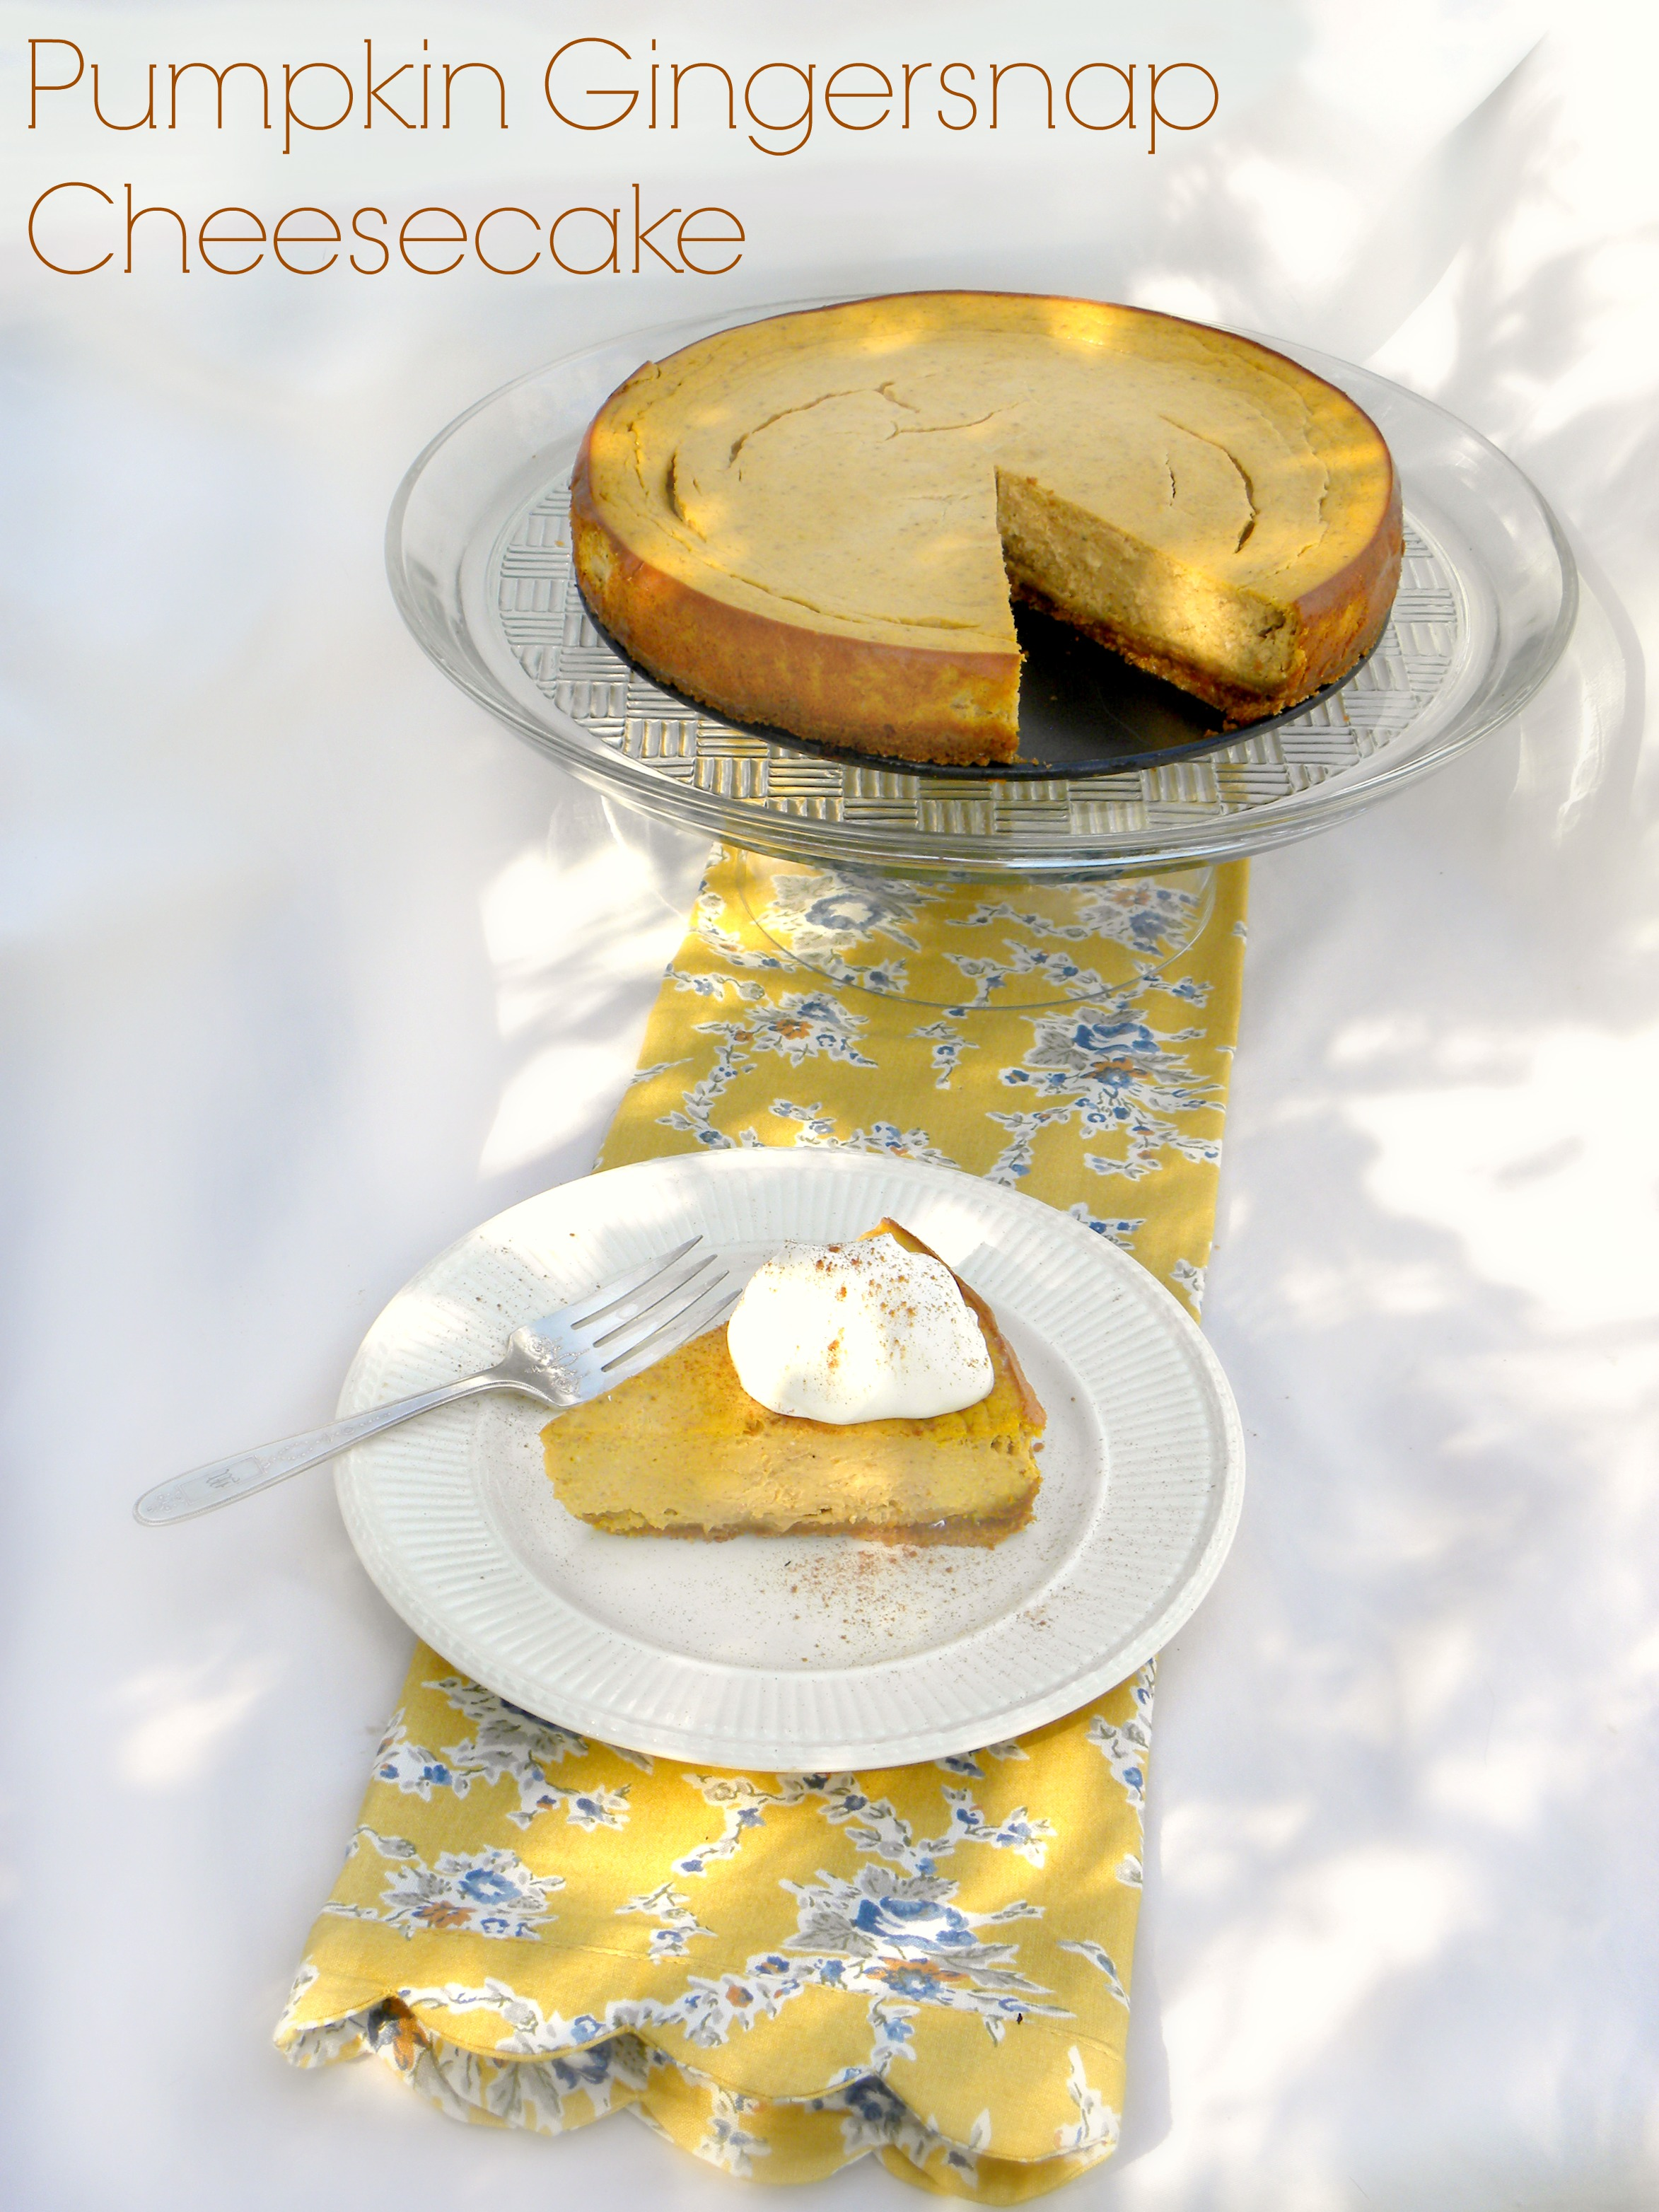 Pumpkin Gingersnap Cheesecake Recipe (9-inch and cupcake-size ...